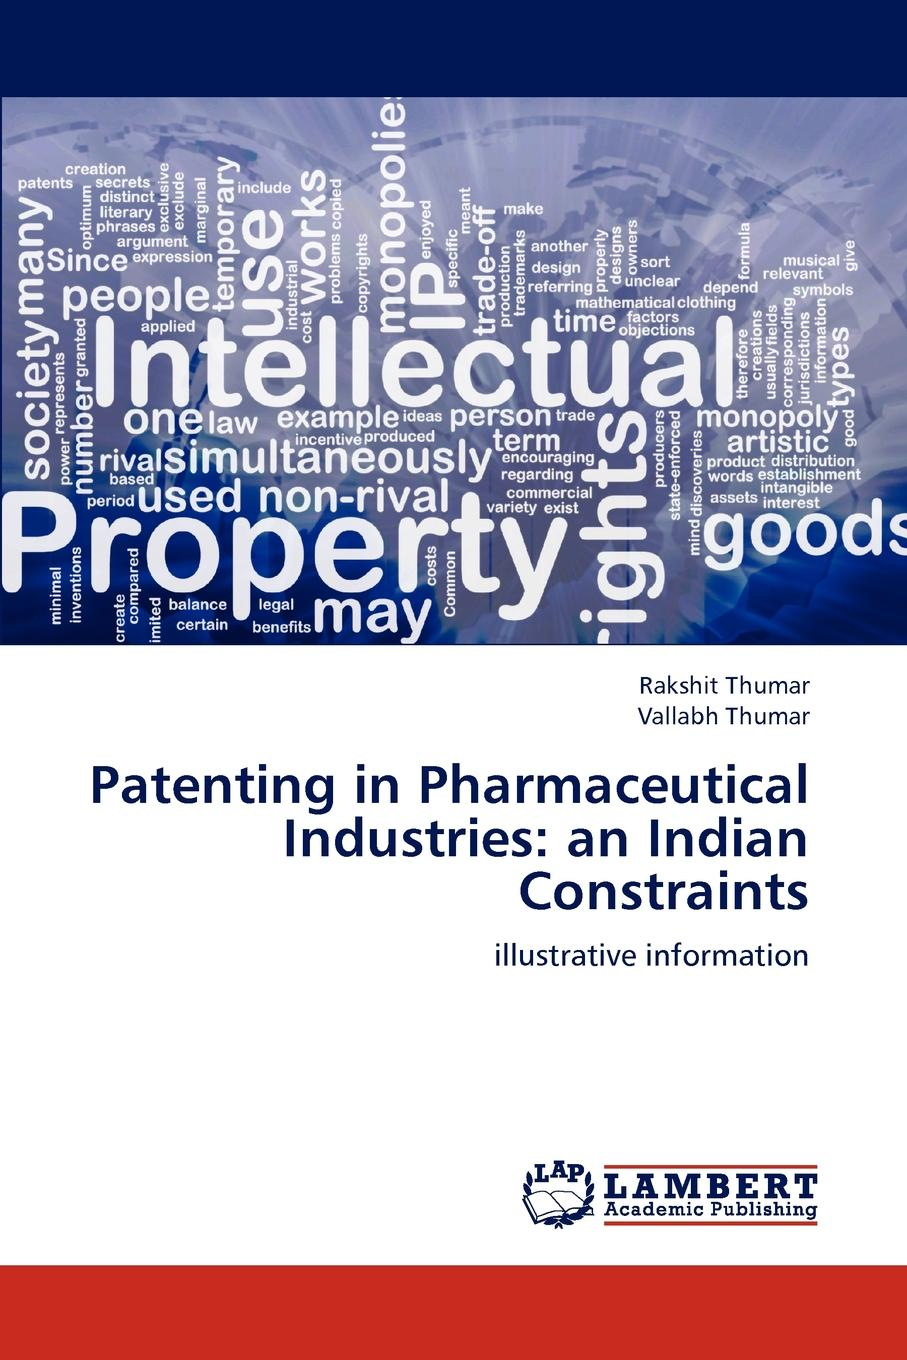 Rakshit Thumar, Vallabh Thumar Patenting in Pharmaceutical Industries. an Indian Constraints patrick sullivan h edison in the boardroom revisited how leading companies realize value from their intellectual property